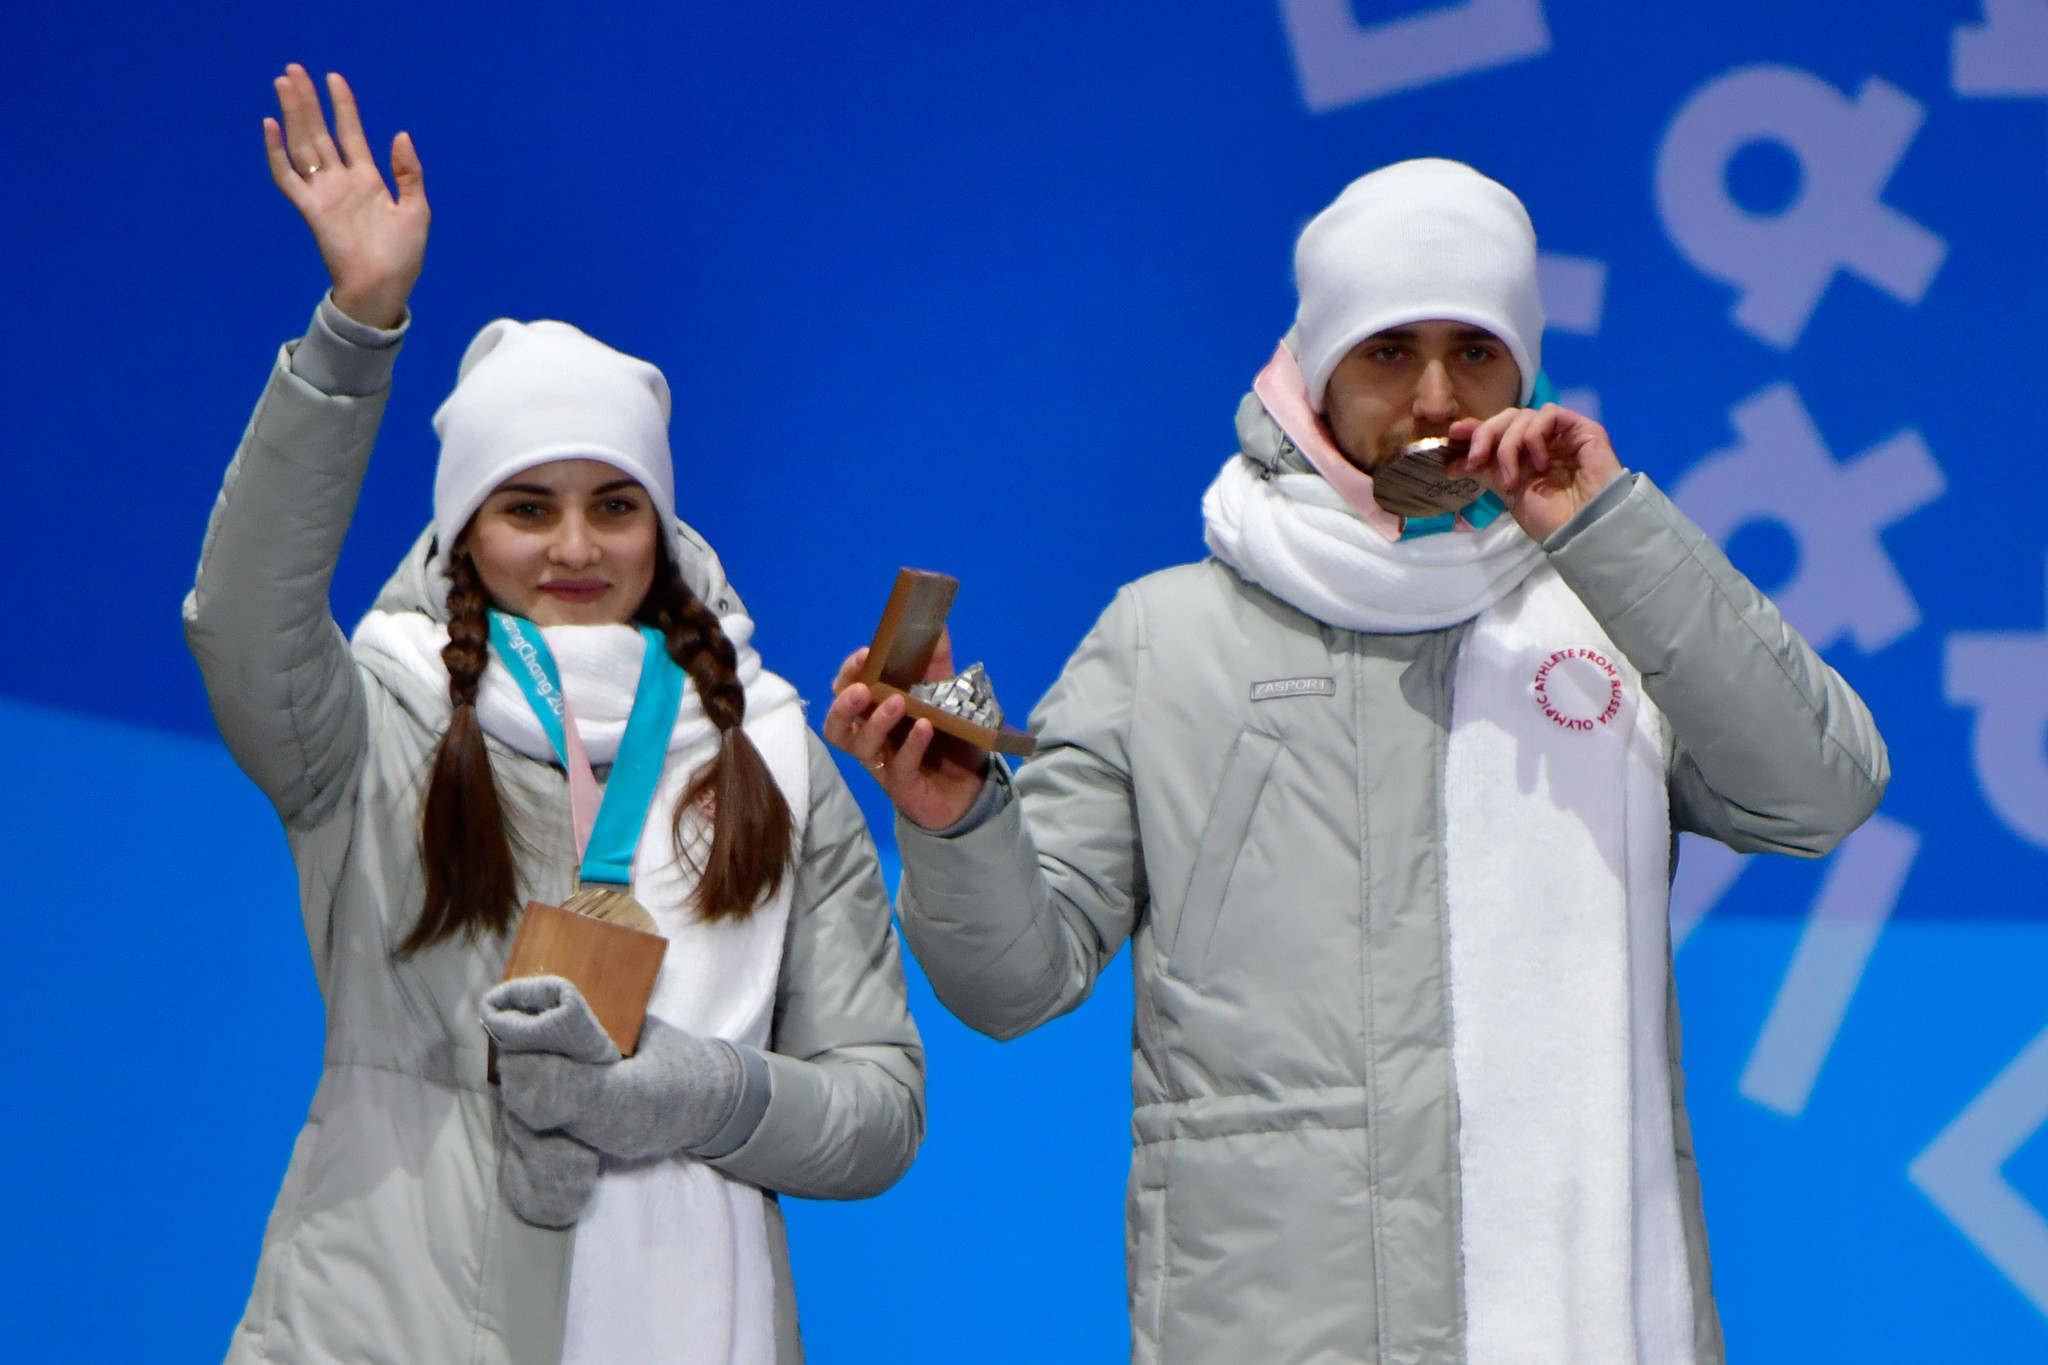 Aleksandr Krushelnitckii, right, and Anastasia Bryzgalova were later stripped of the bronze medals secured at Pyeongchang 2018 ©Getty Images